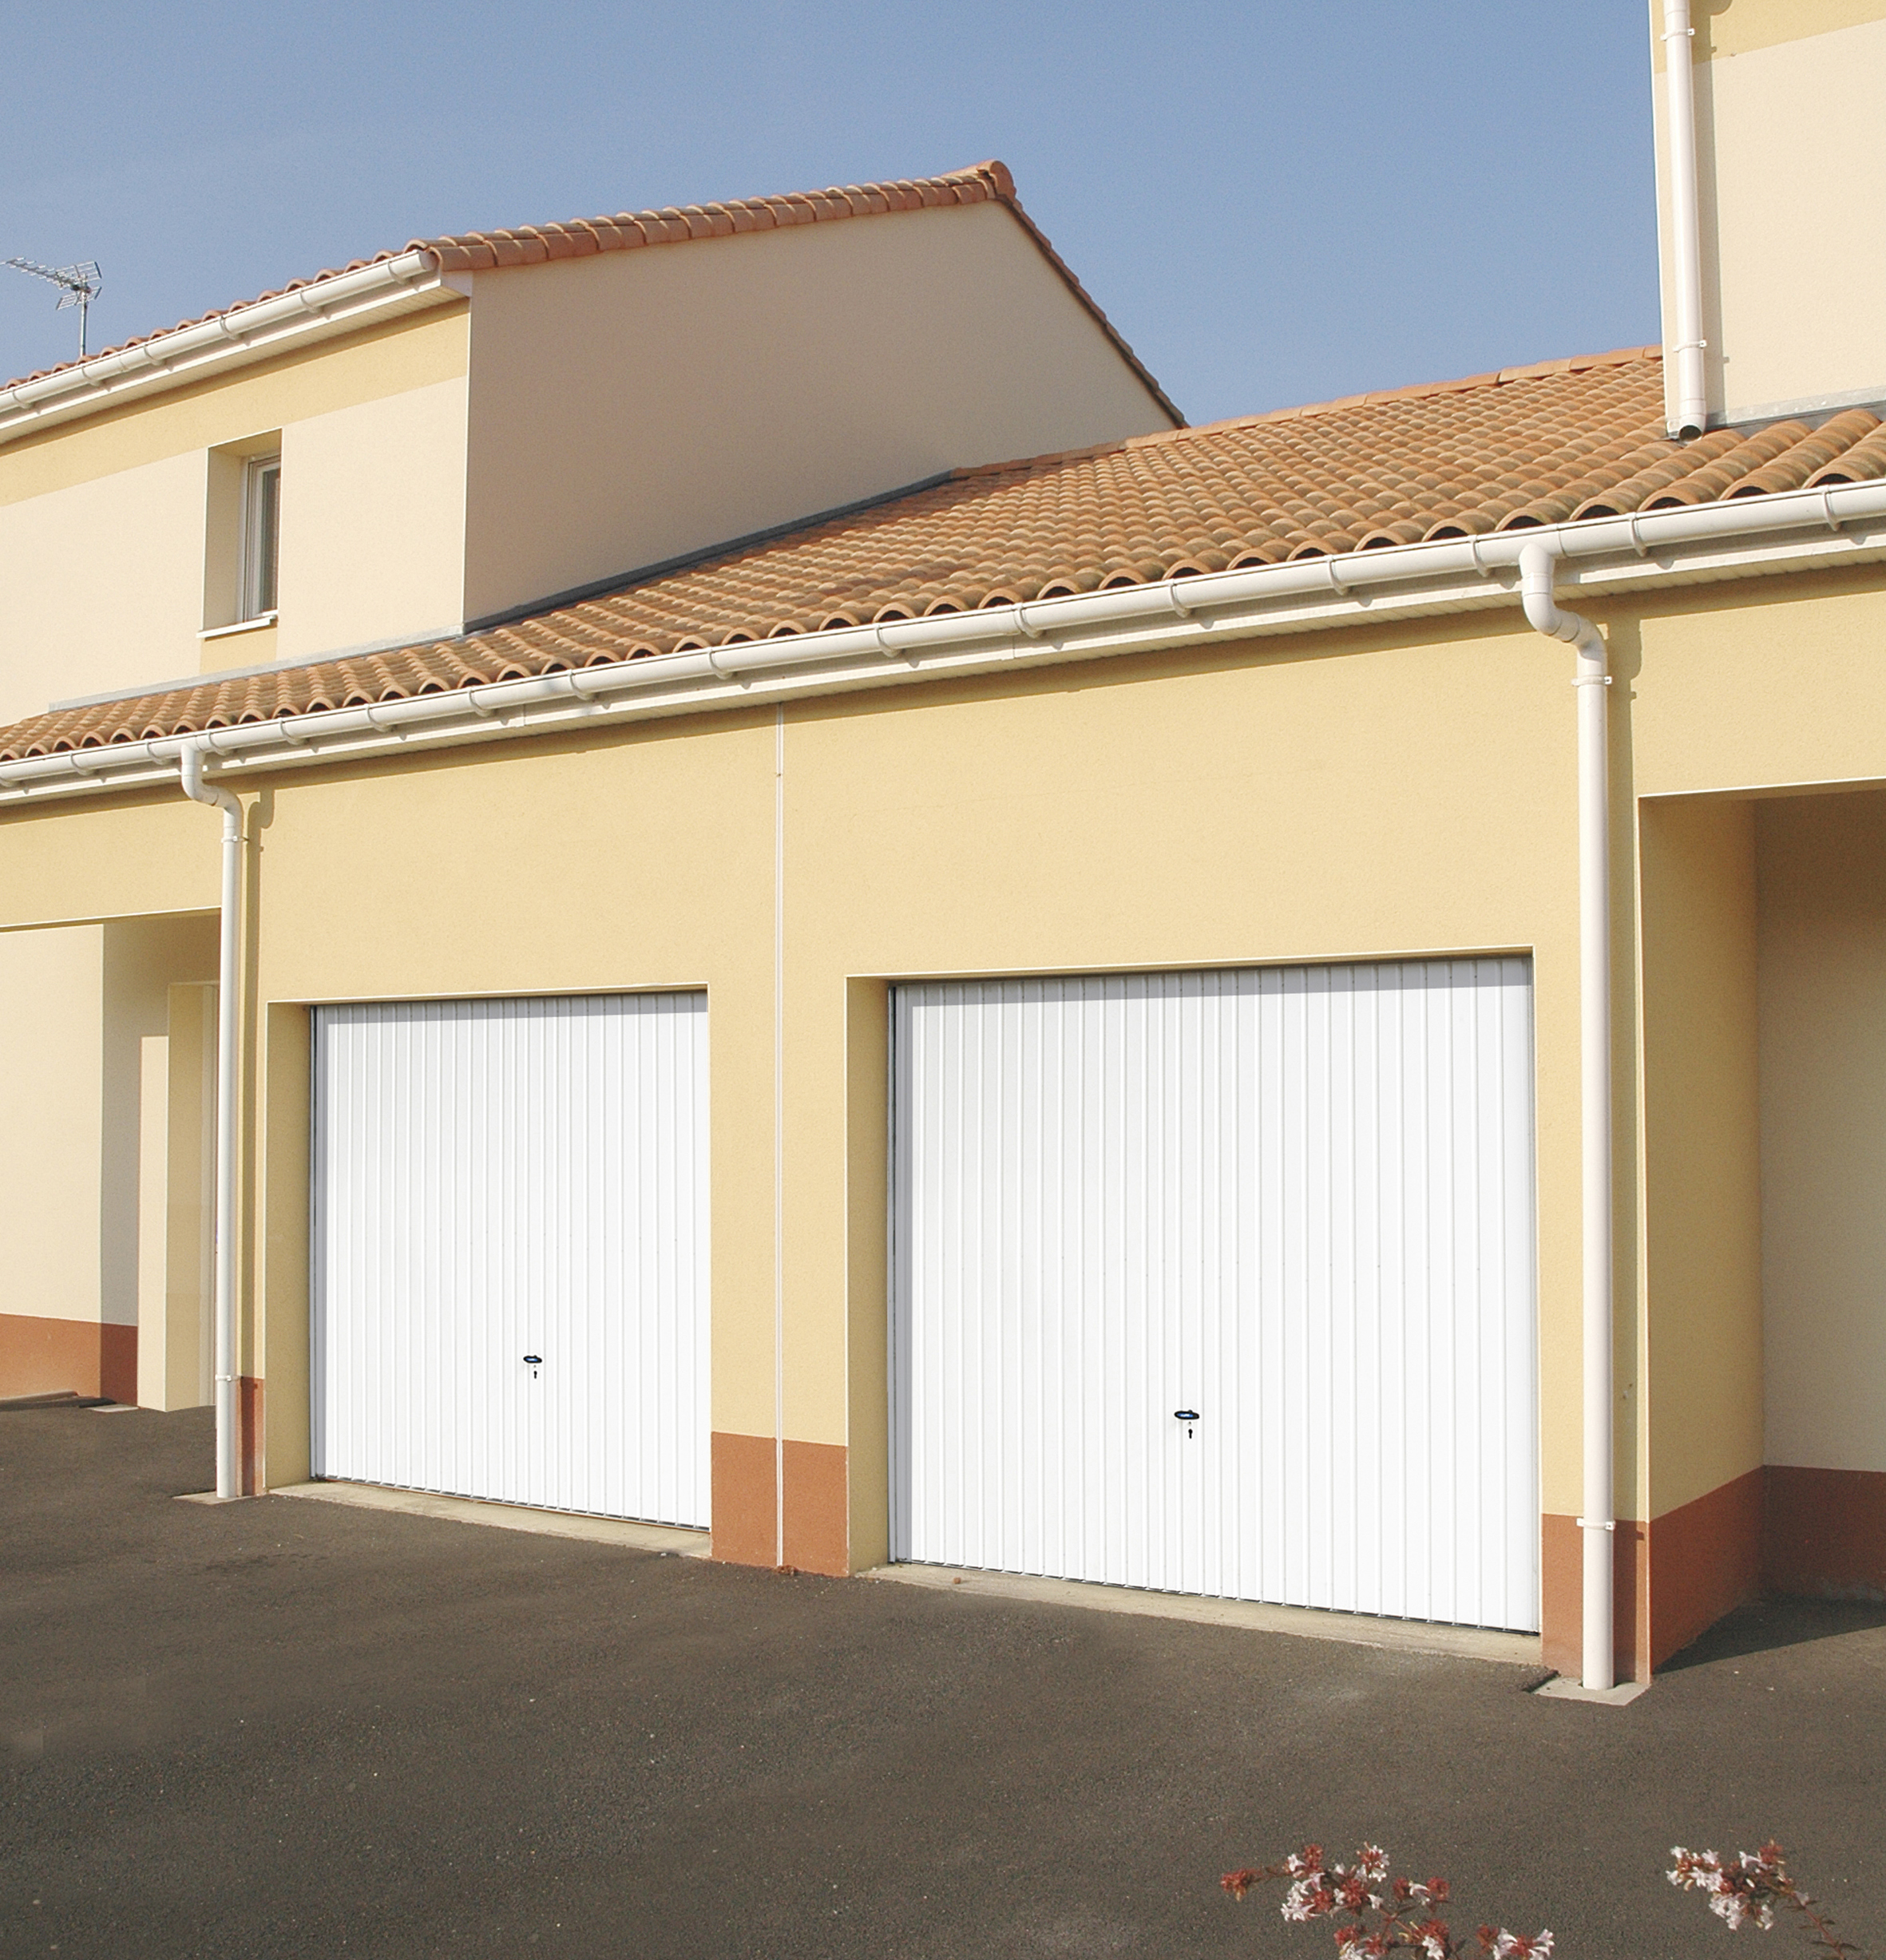 Baies fermetures grenoble fen tres volets baies - Porte de garage metallique basculante ...